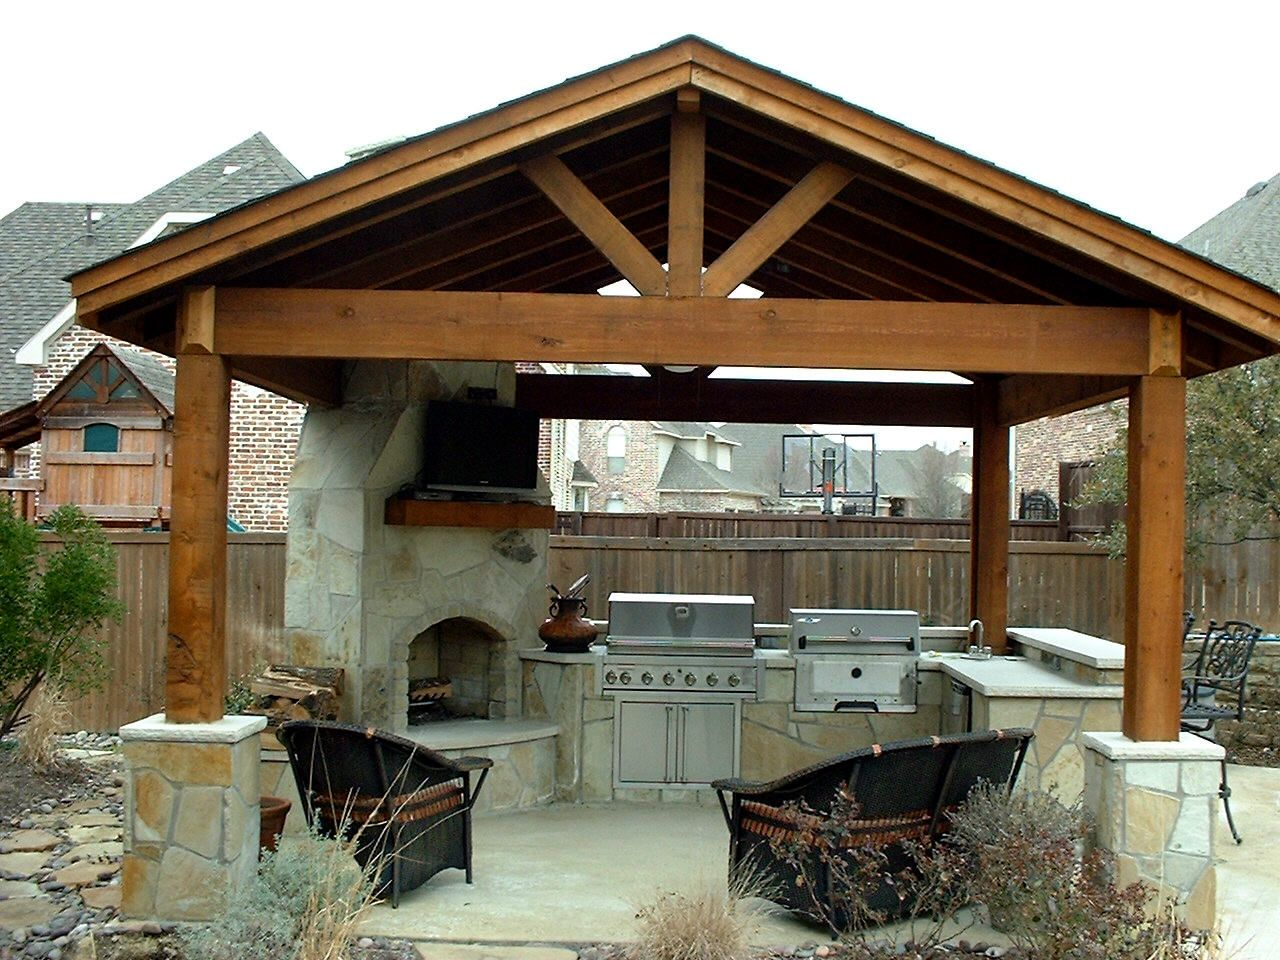 Rustic Outdoor Kitchen Design With Compact Kitchen Appliances: Mesmerizing  Wooden Pergola For Outdoor Kitchen Ideas Overlooking With Comfy Black  Couches